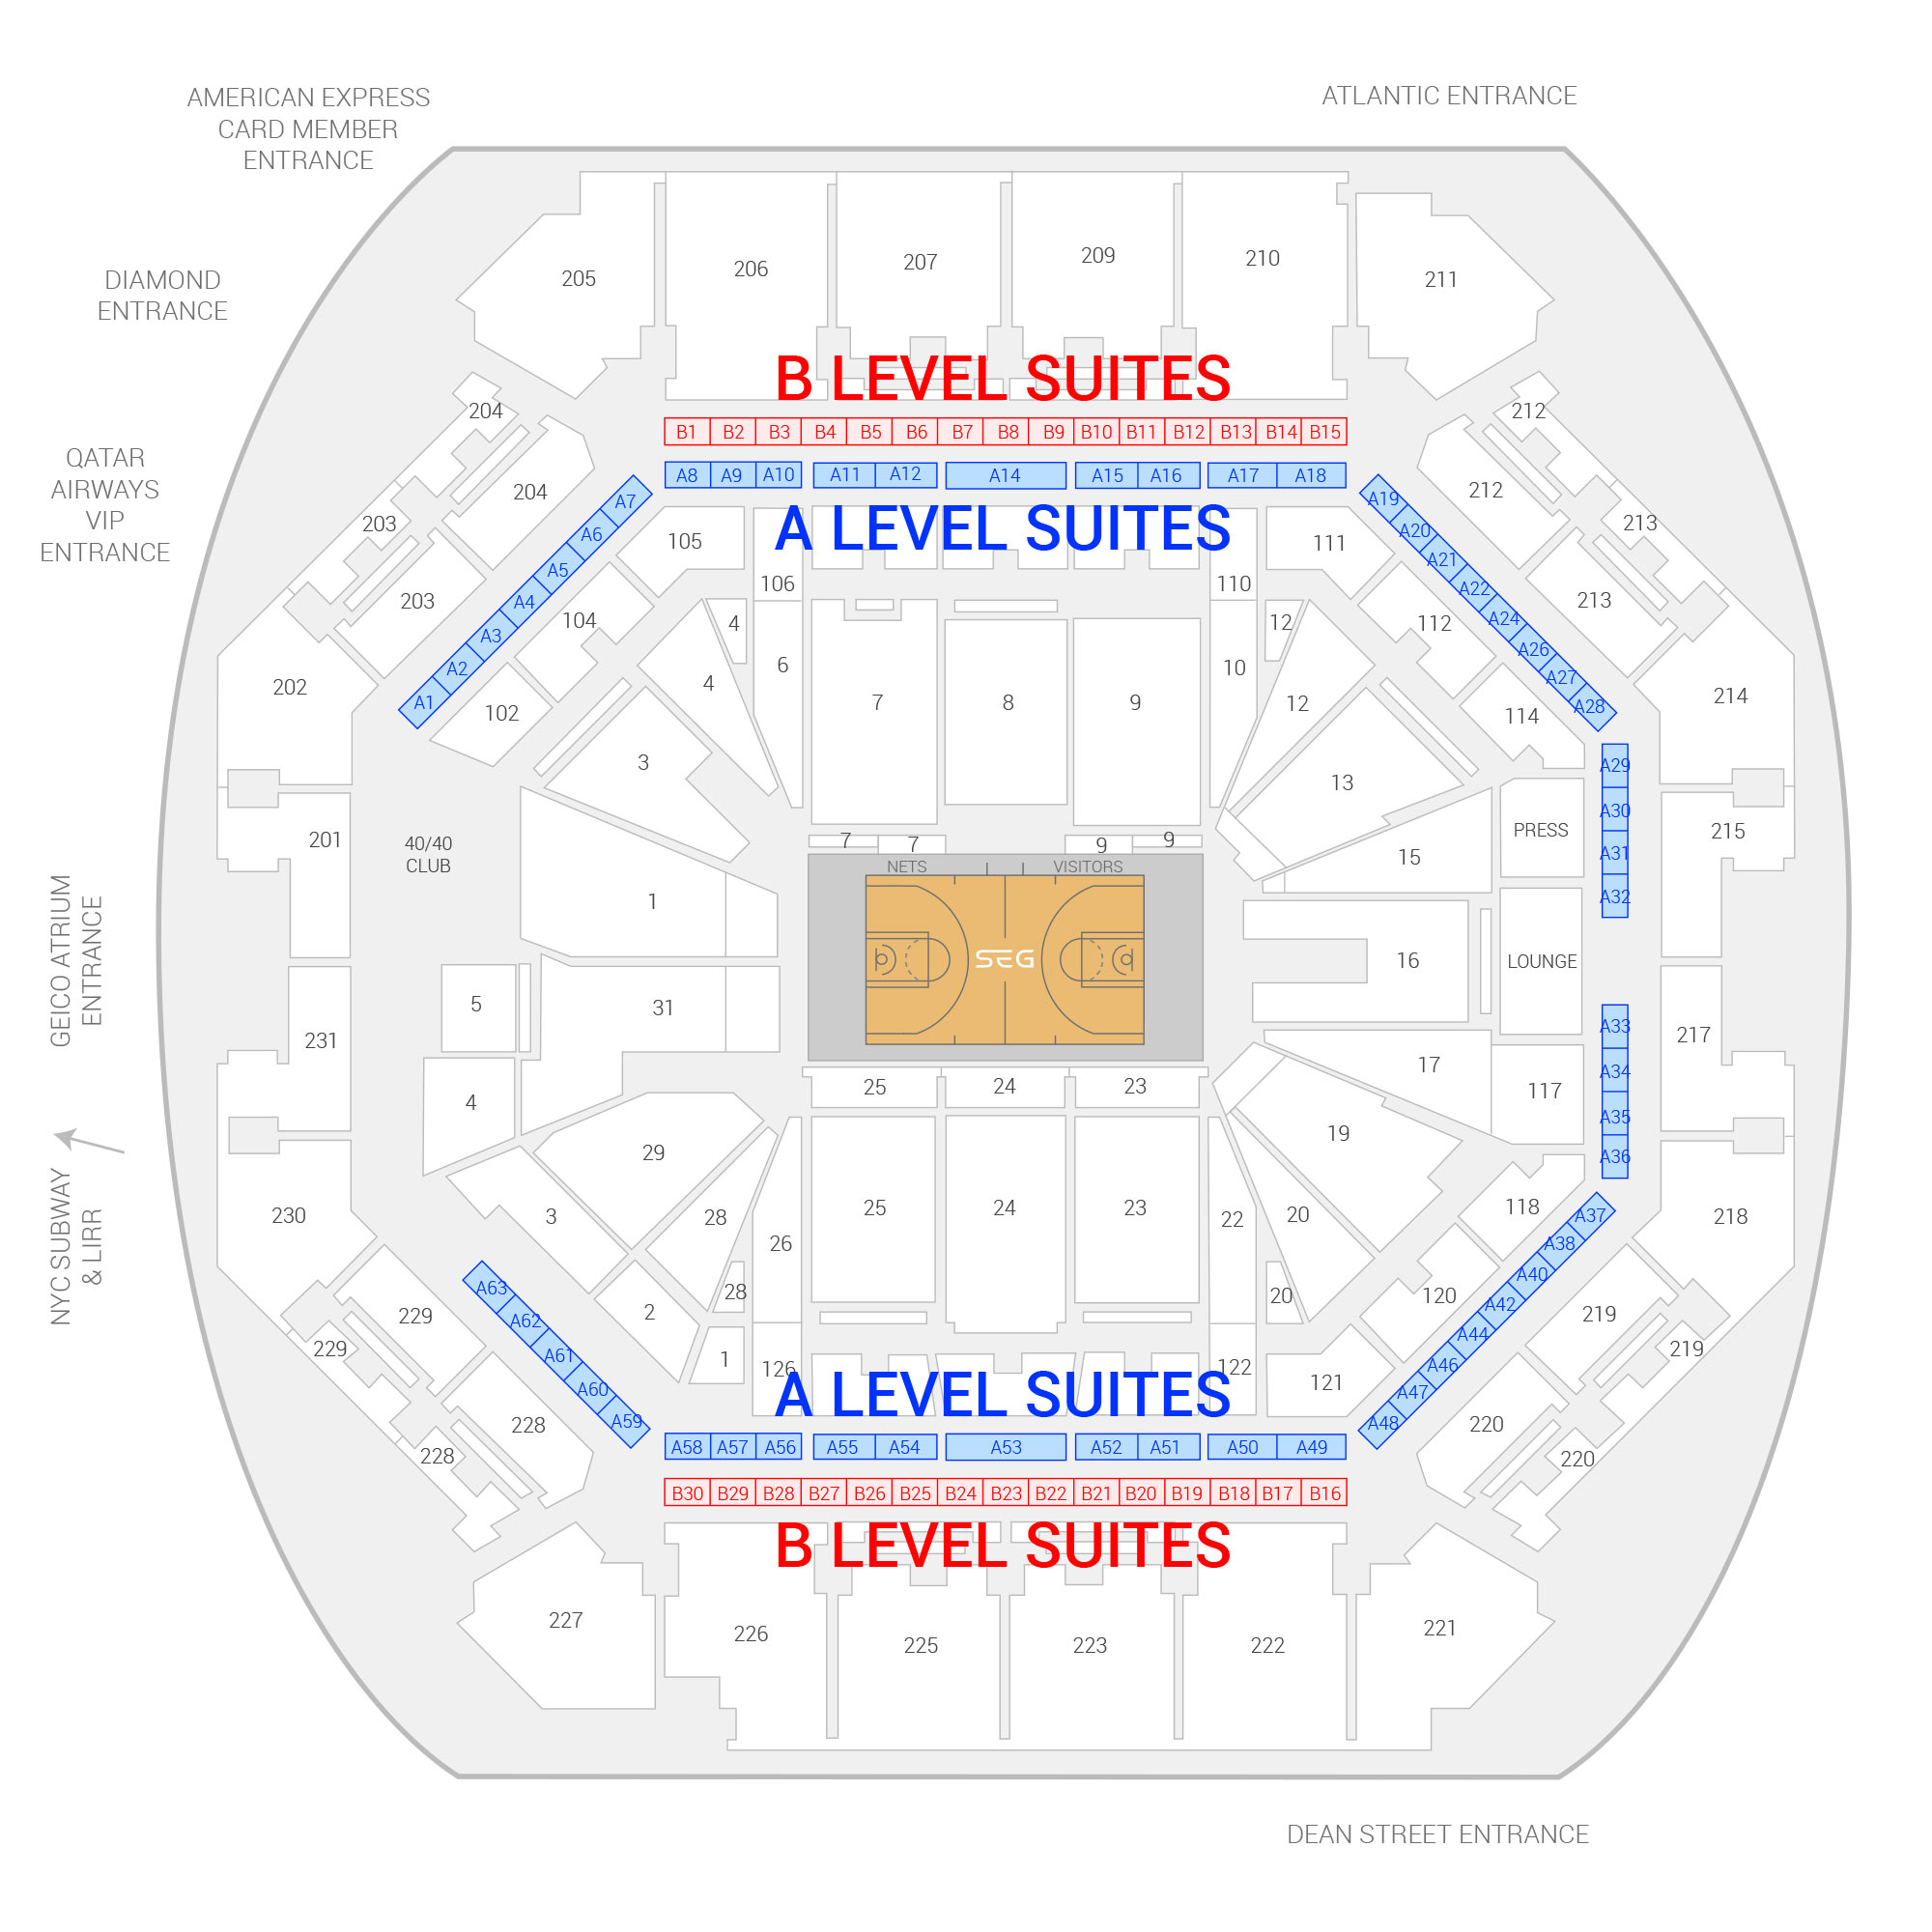 Barclays Center Brooklyn Nets Suite Map and Seating Chart